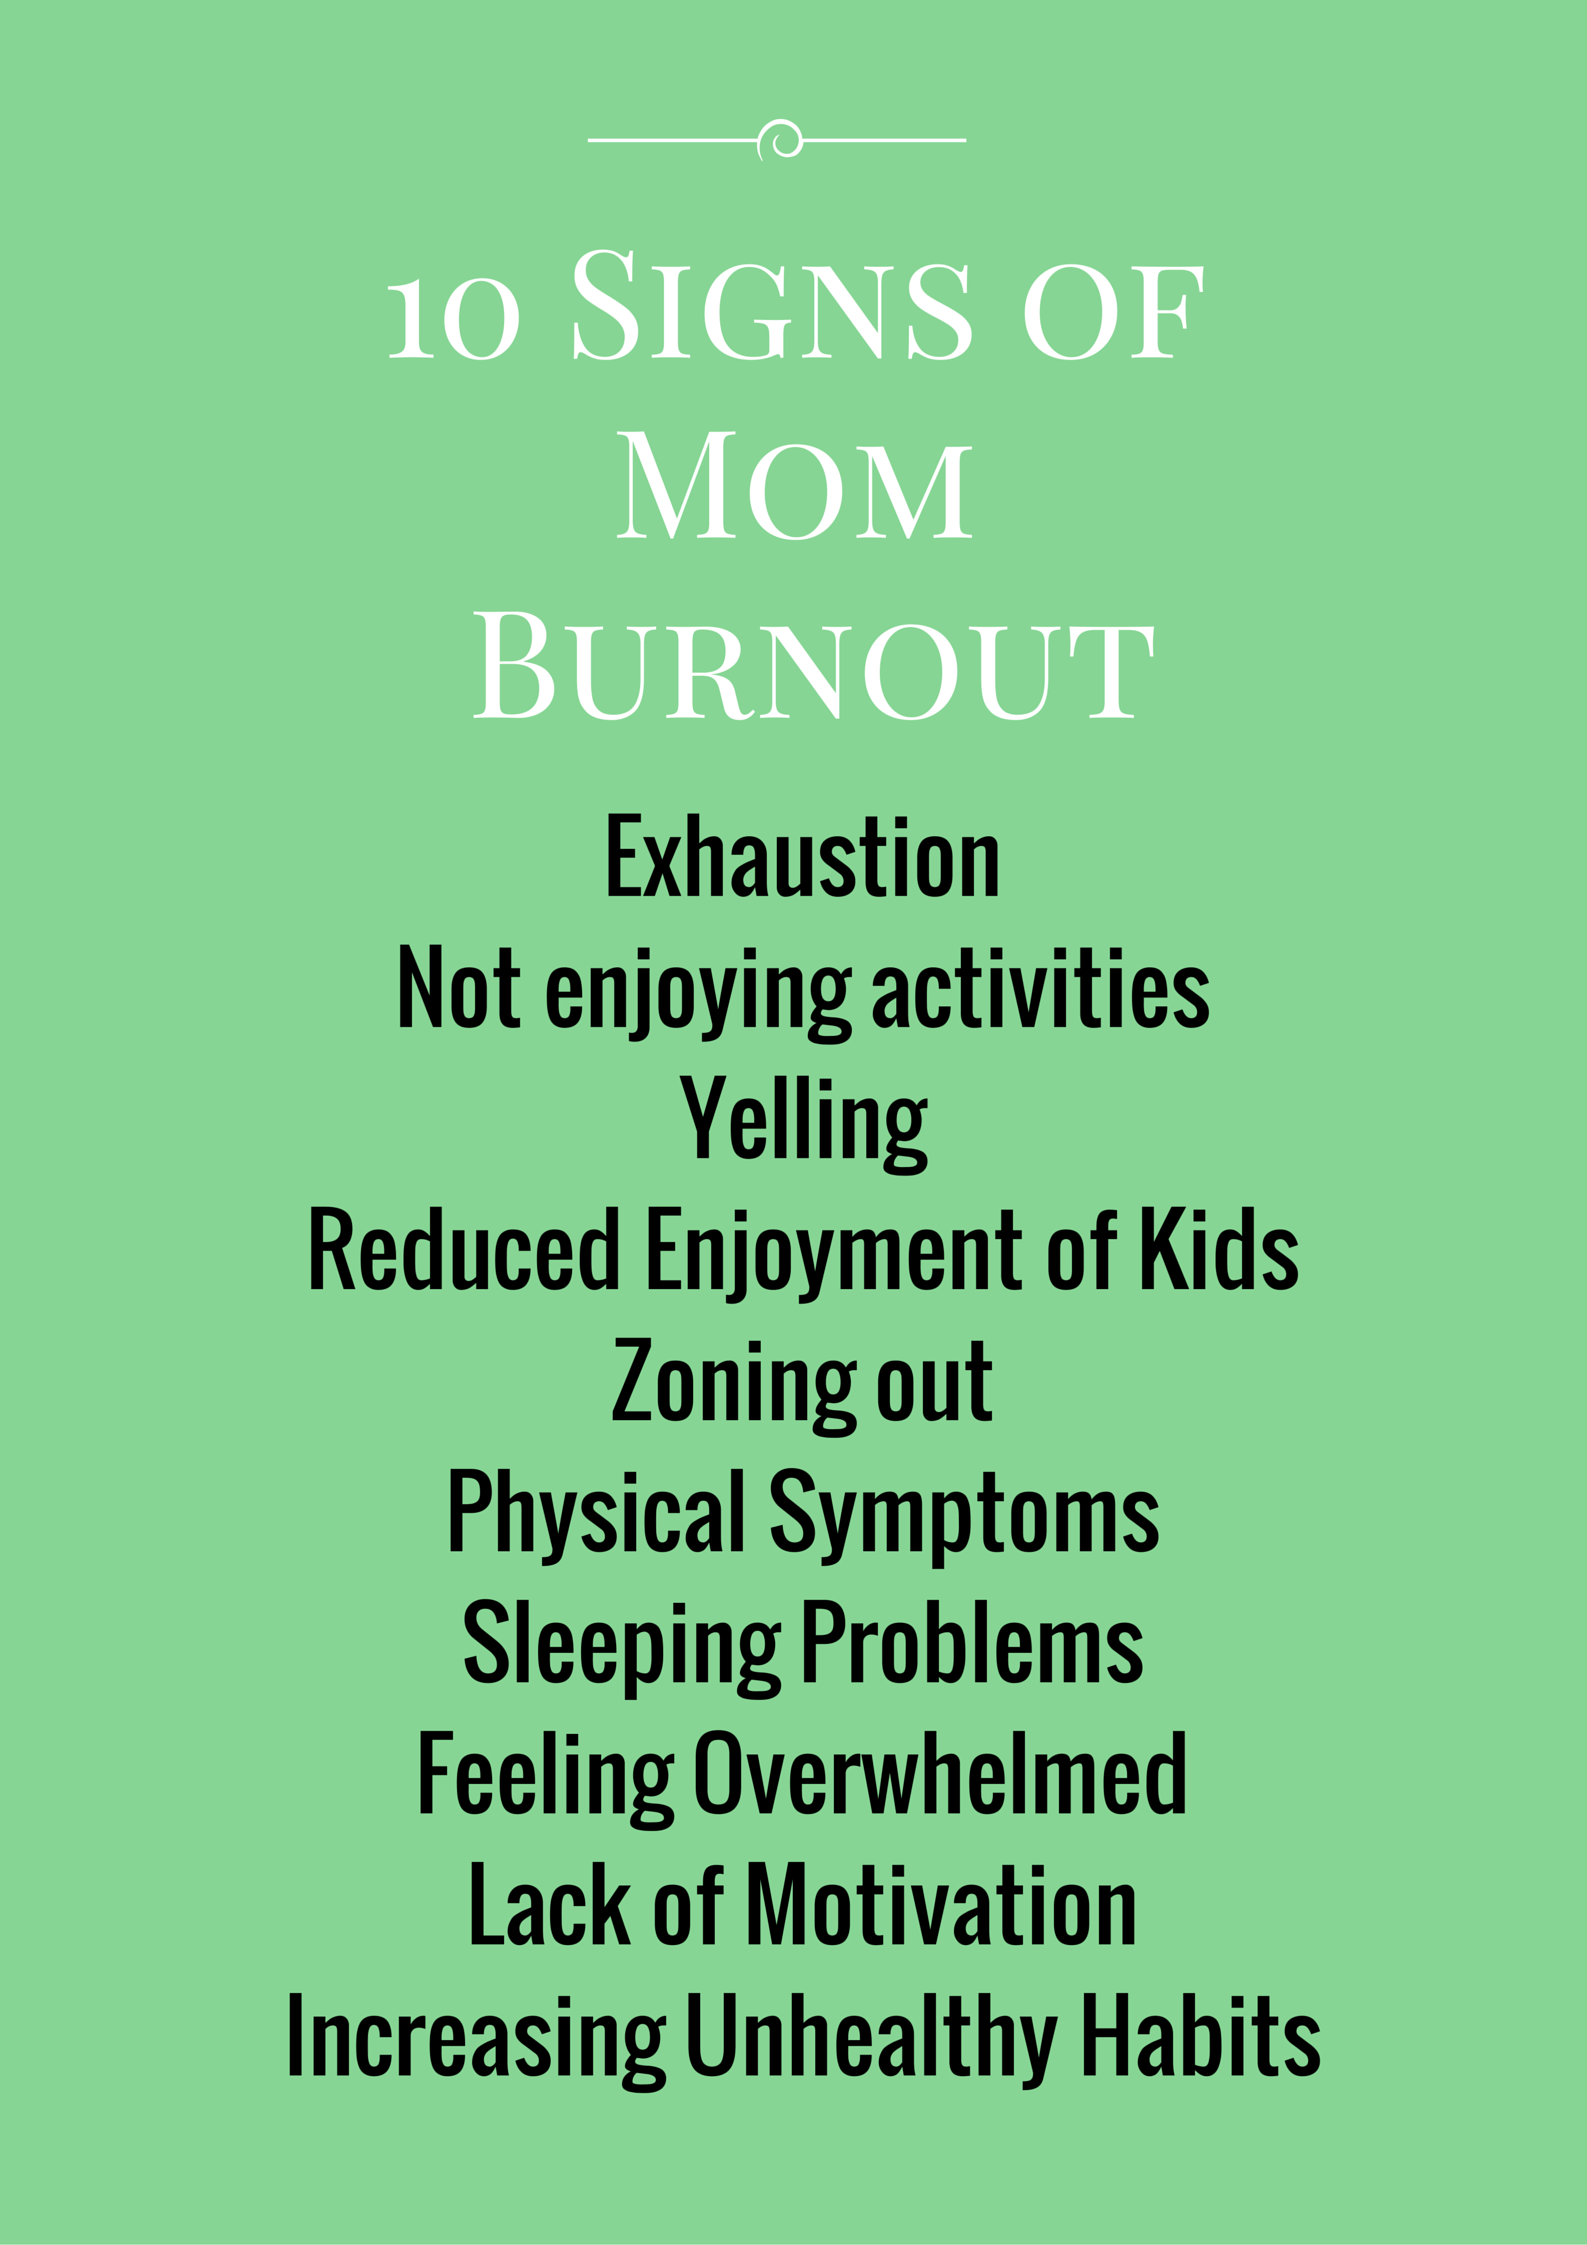 signs of mom burn out jlf counseling services blog uncategorized burn out mental health mom postpartum therapists 1 2015 by jessica fowler lcsw 0 comments